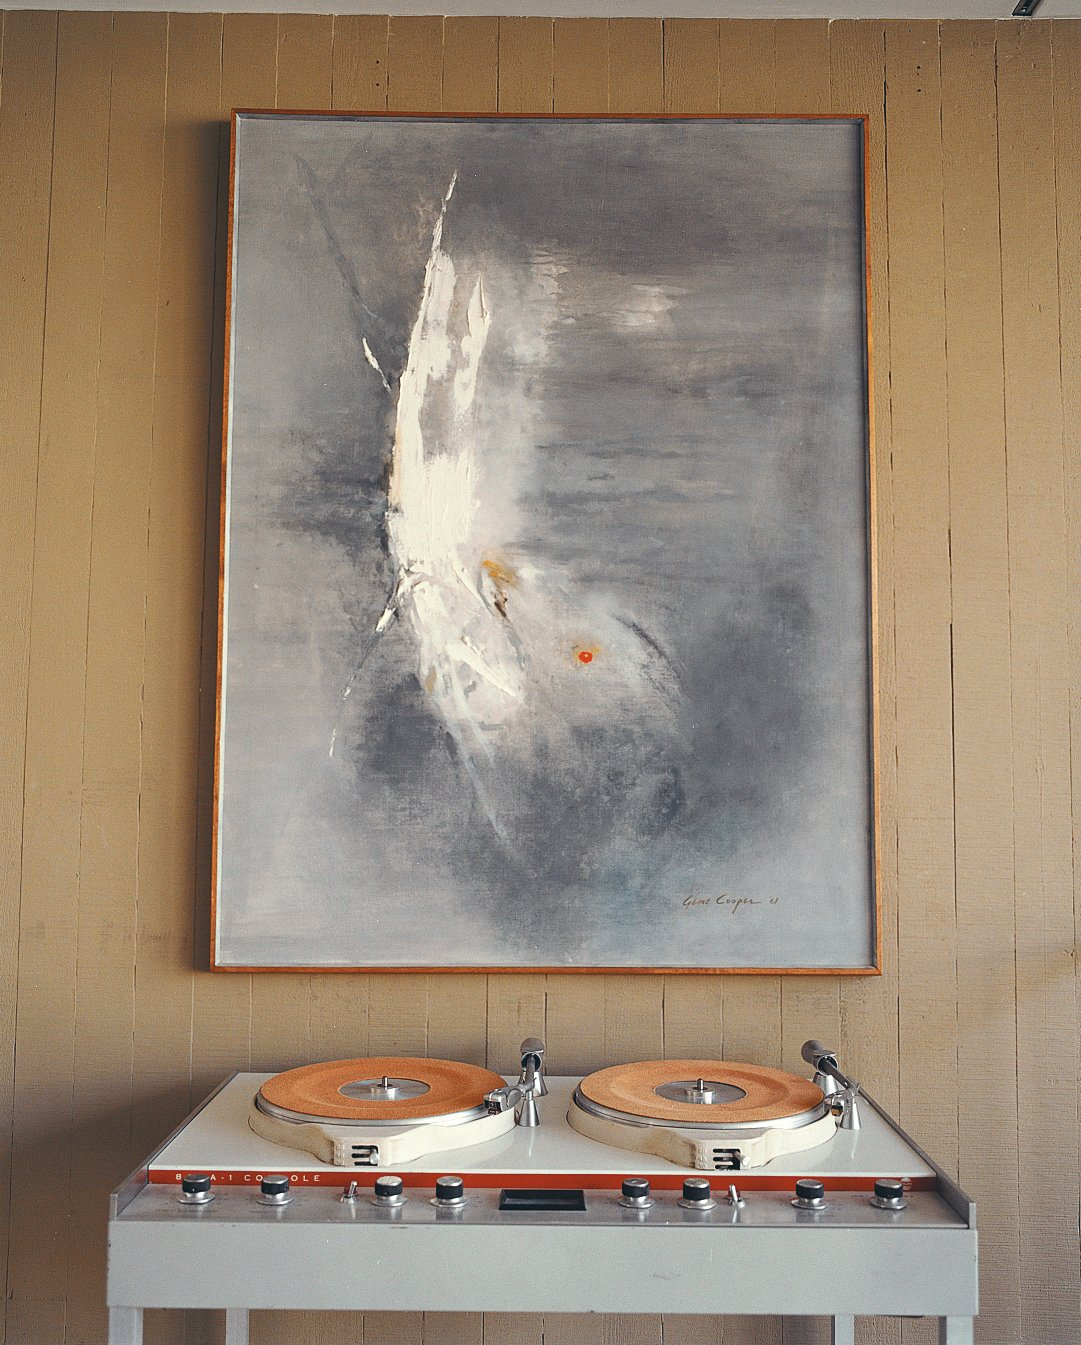 Living Room Stevens pared down his collection of vintage furniture and art considerably when he bought the Opdahl house, but he saved critical pieces such as this Gene Cooper painting.  Photo 8 of 10 in Opdahl Remastered